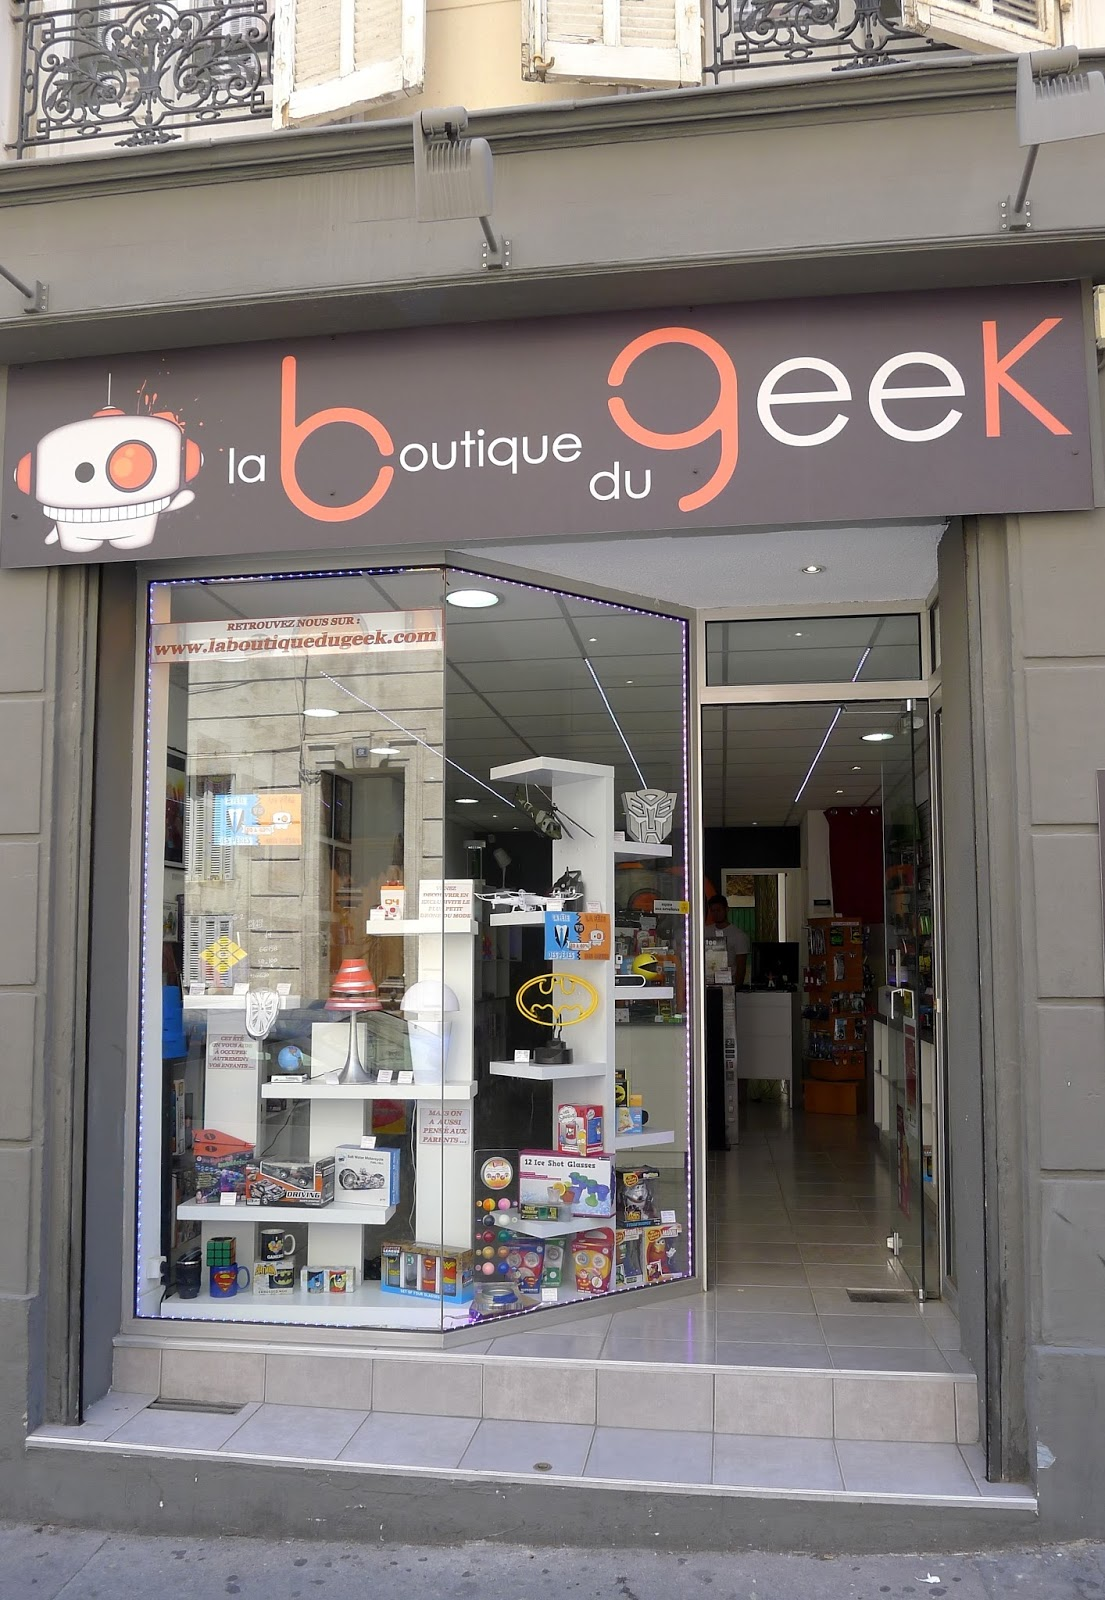 la boutique du geek recettes pour mon bent. Black Bedroom Furniture Sets. Home Design Ideas